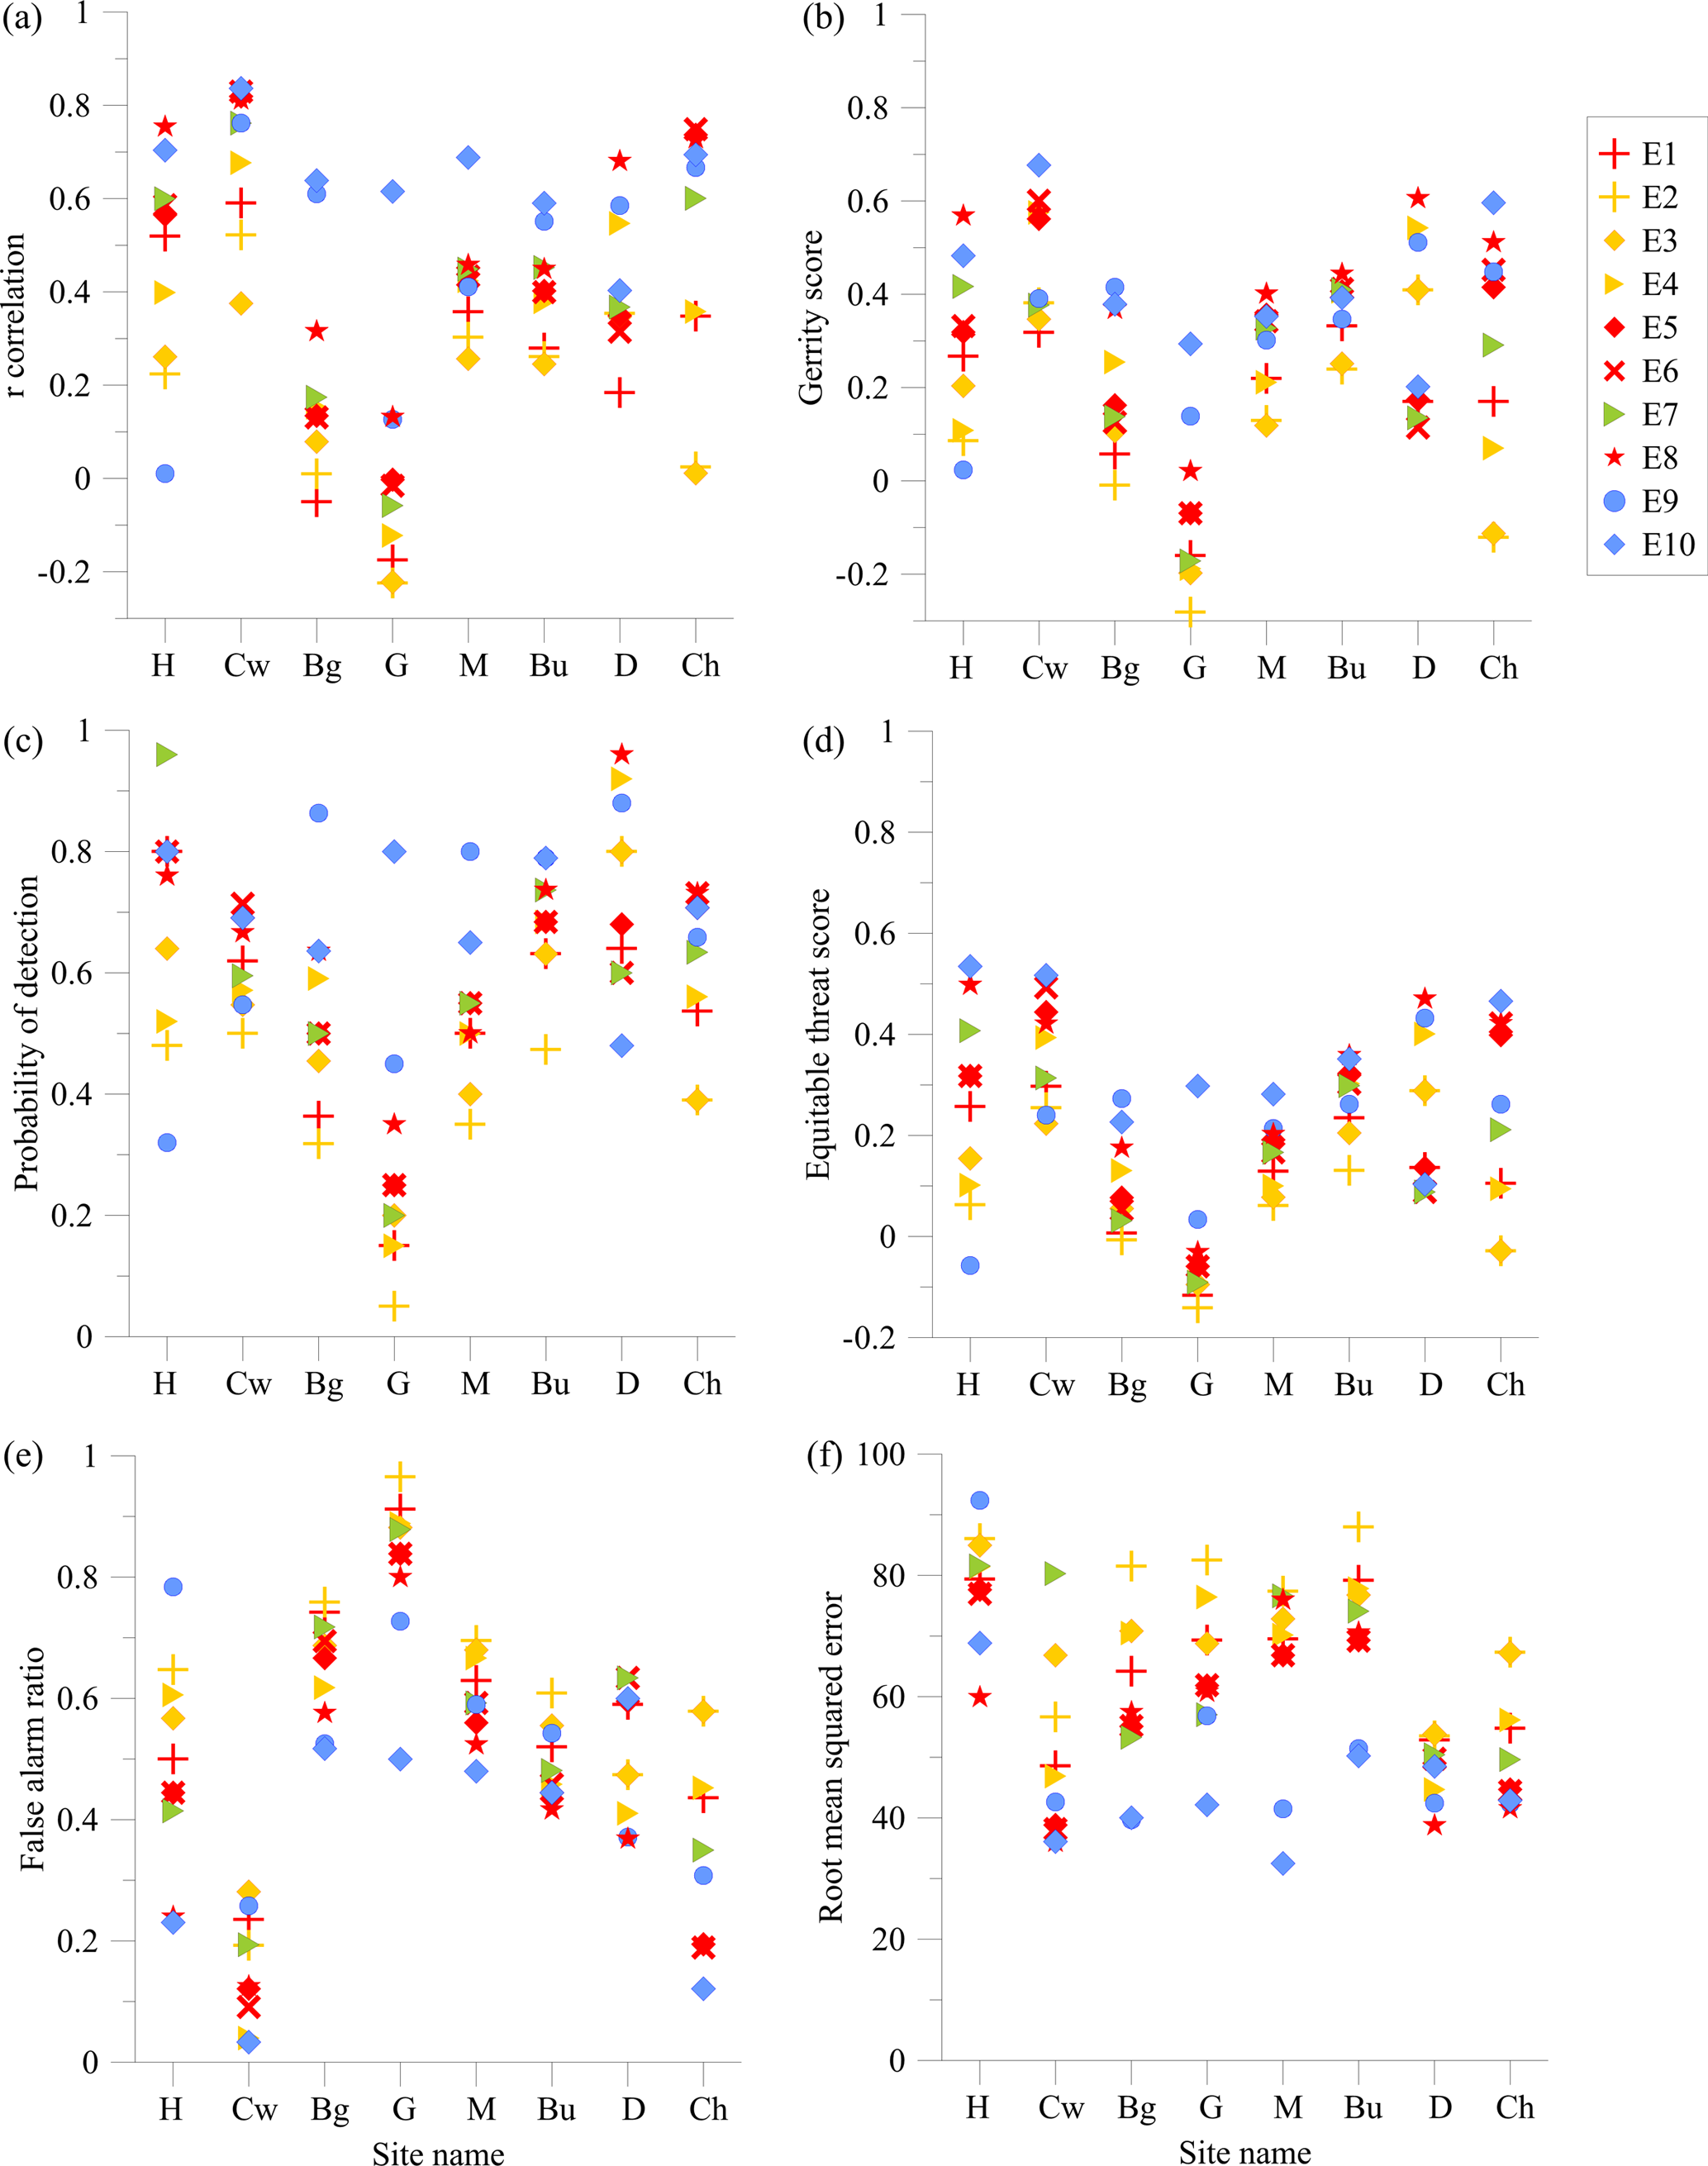 GMD - Development and evaluation of pollen source